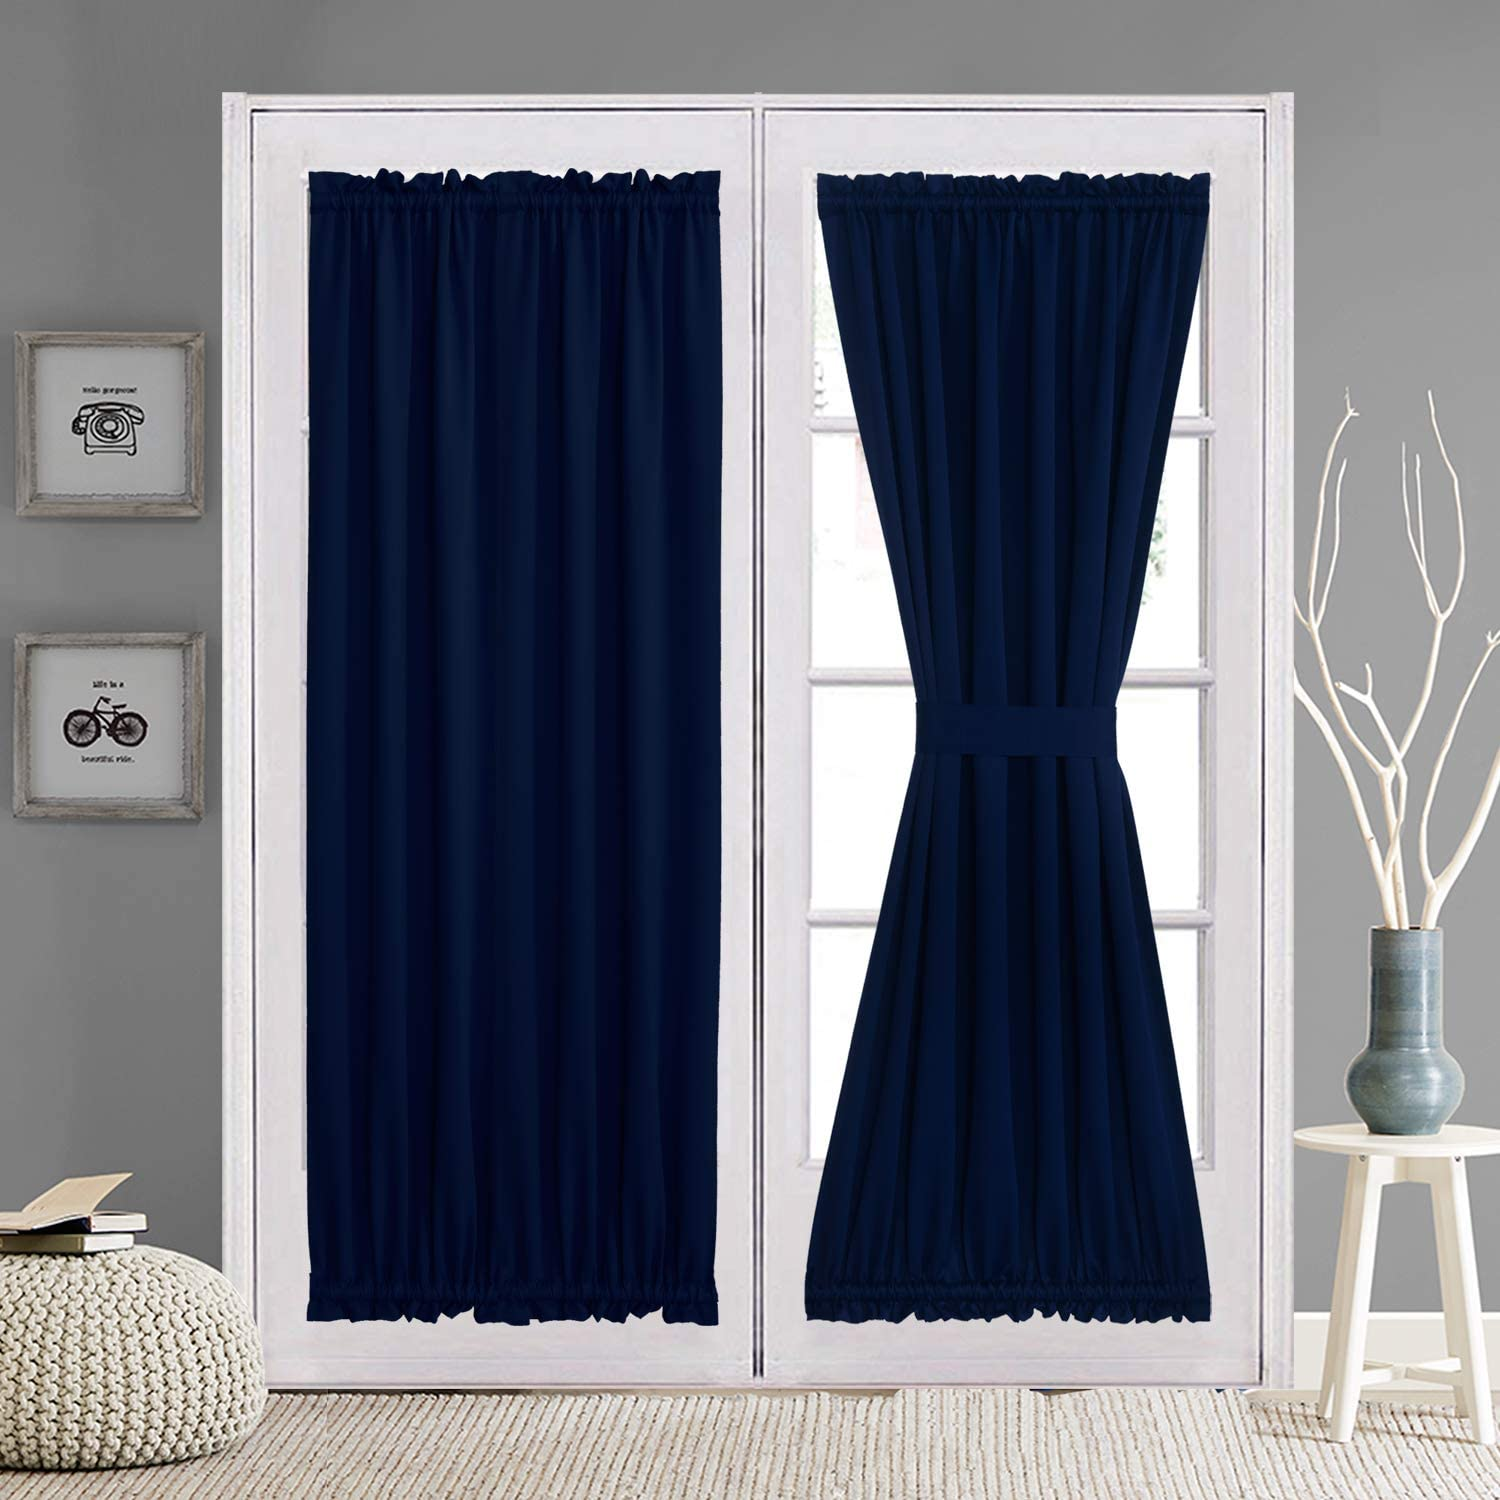 aquazolax patio door curtain panels for privacy thermal insulated 54 x72 blackout drapery solid curtains window treatment sets with tiebacks for